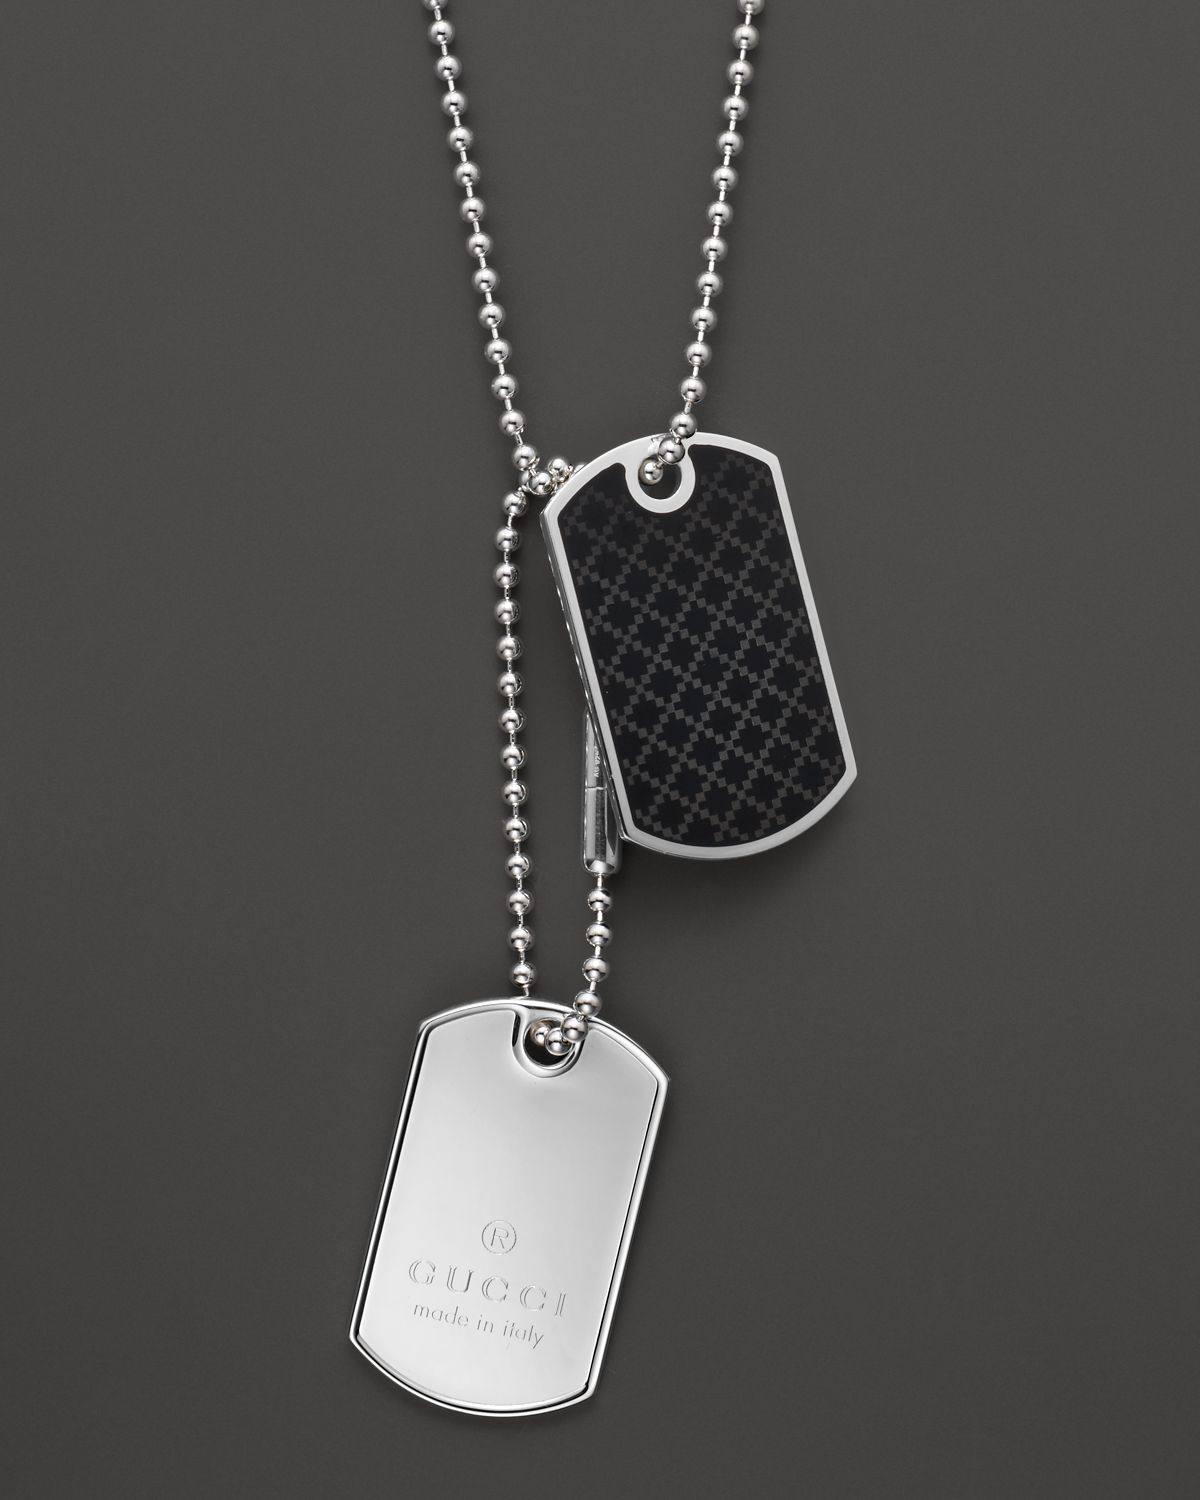 Gucci Dog Tag Necklace 236 In Silver Black Metallic For